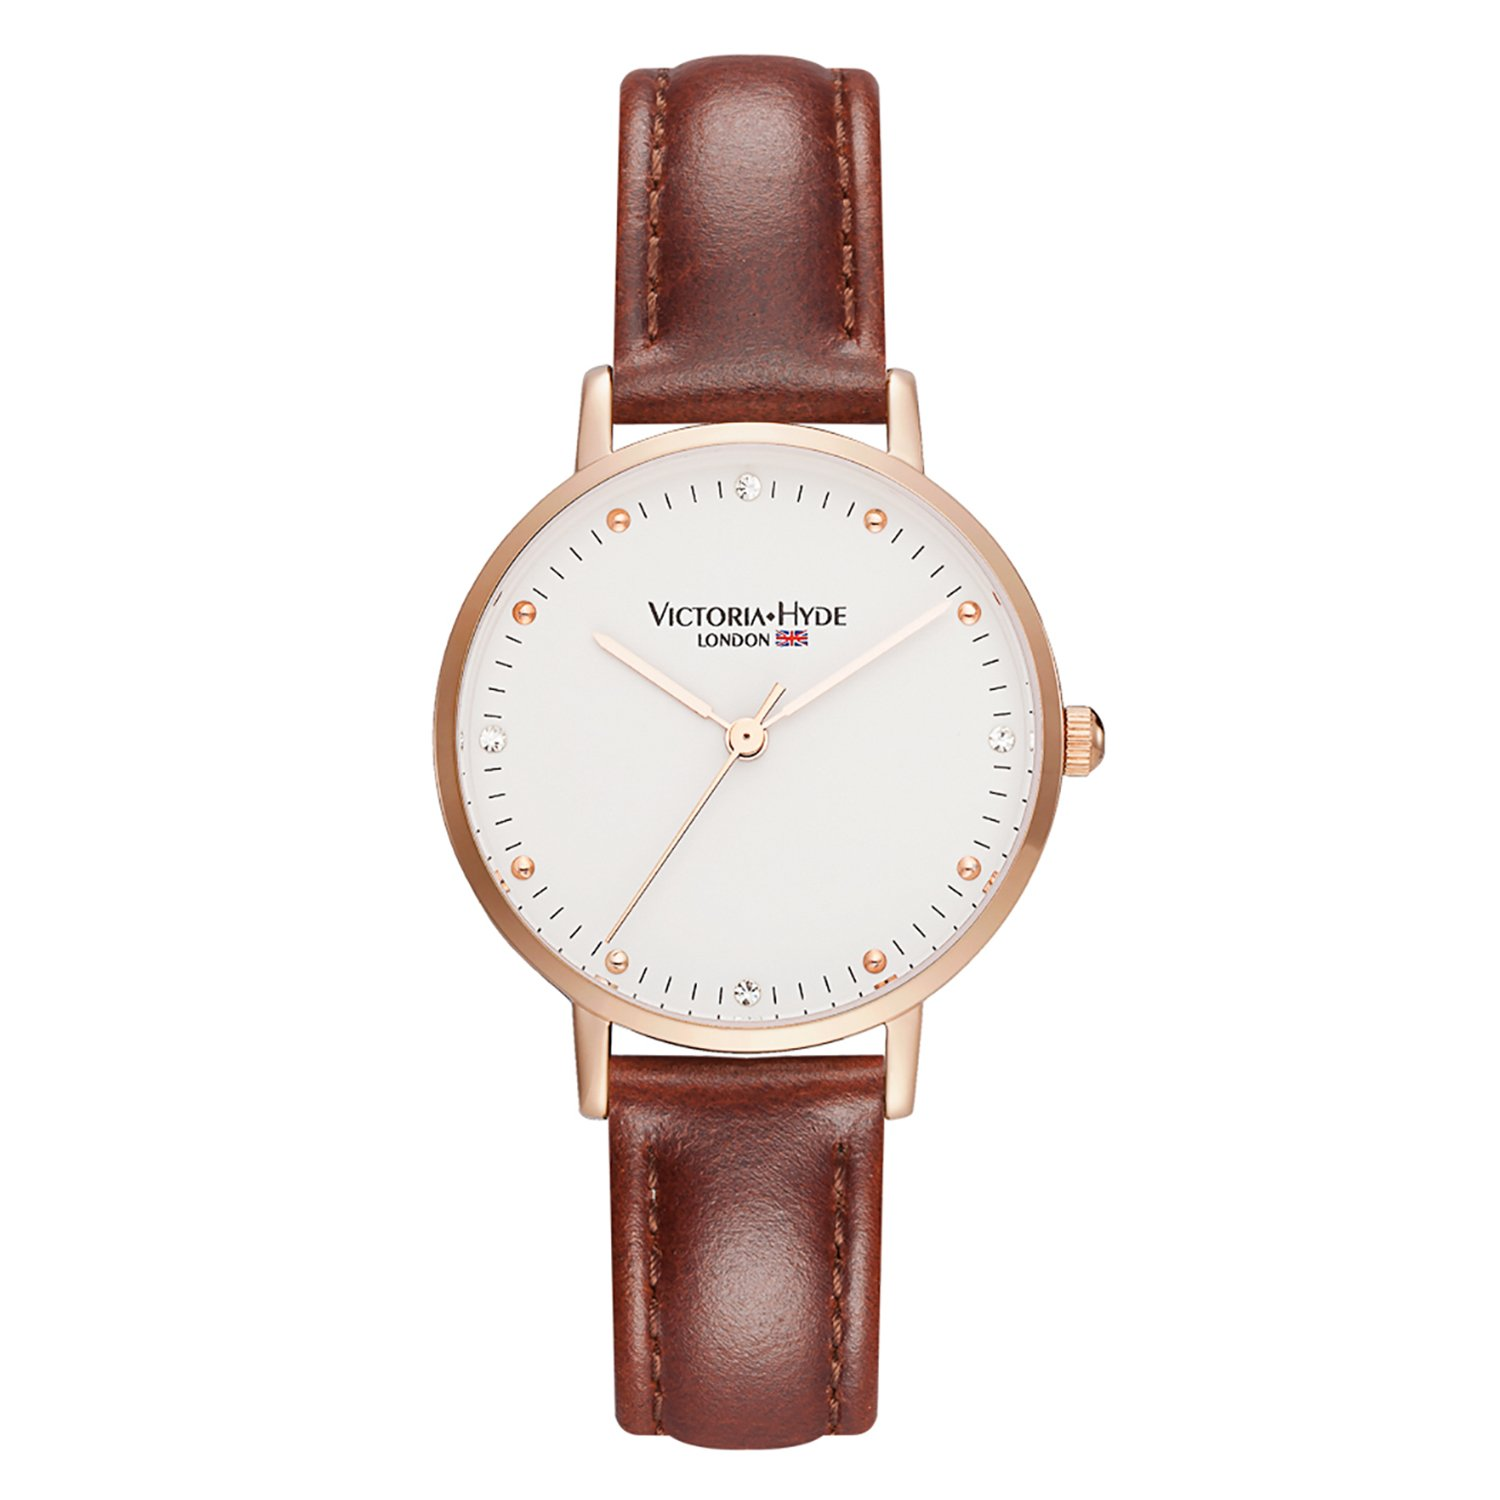 Amazon.com: VICTORIA HYDE Women Quartz Watches Leather Band Brown Wristwatches for Ladies: VICTORIA HYDE: Watches